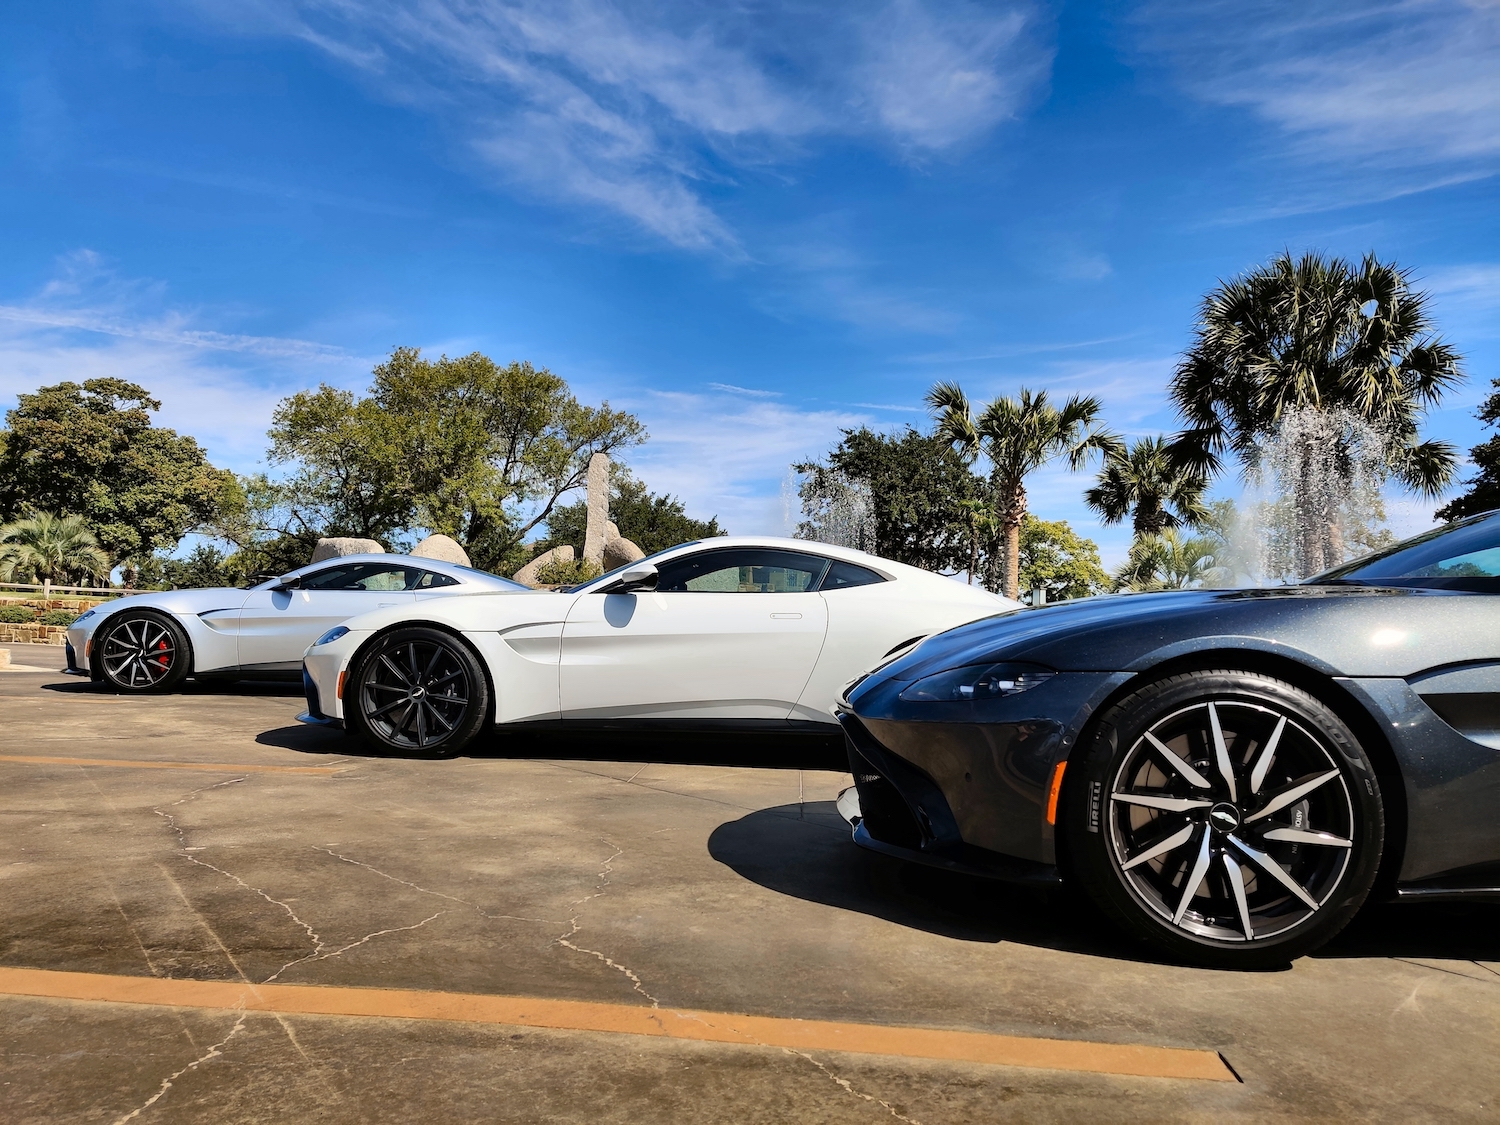 2020 Aston Martin Vantage Review Freethinkers Welcome Hagerty Media